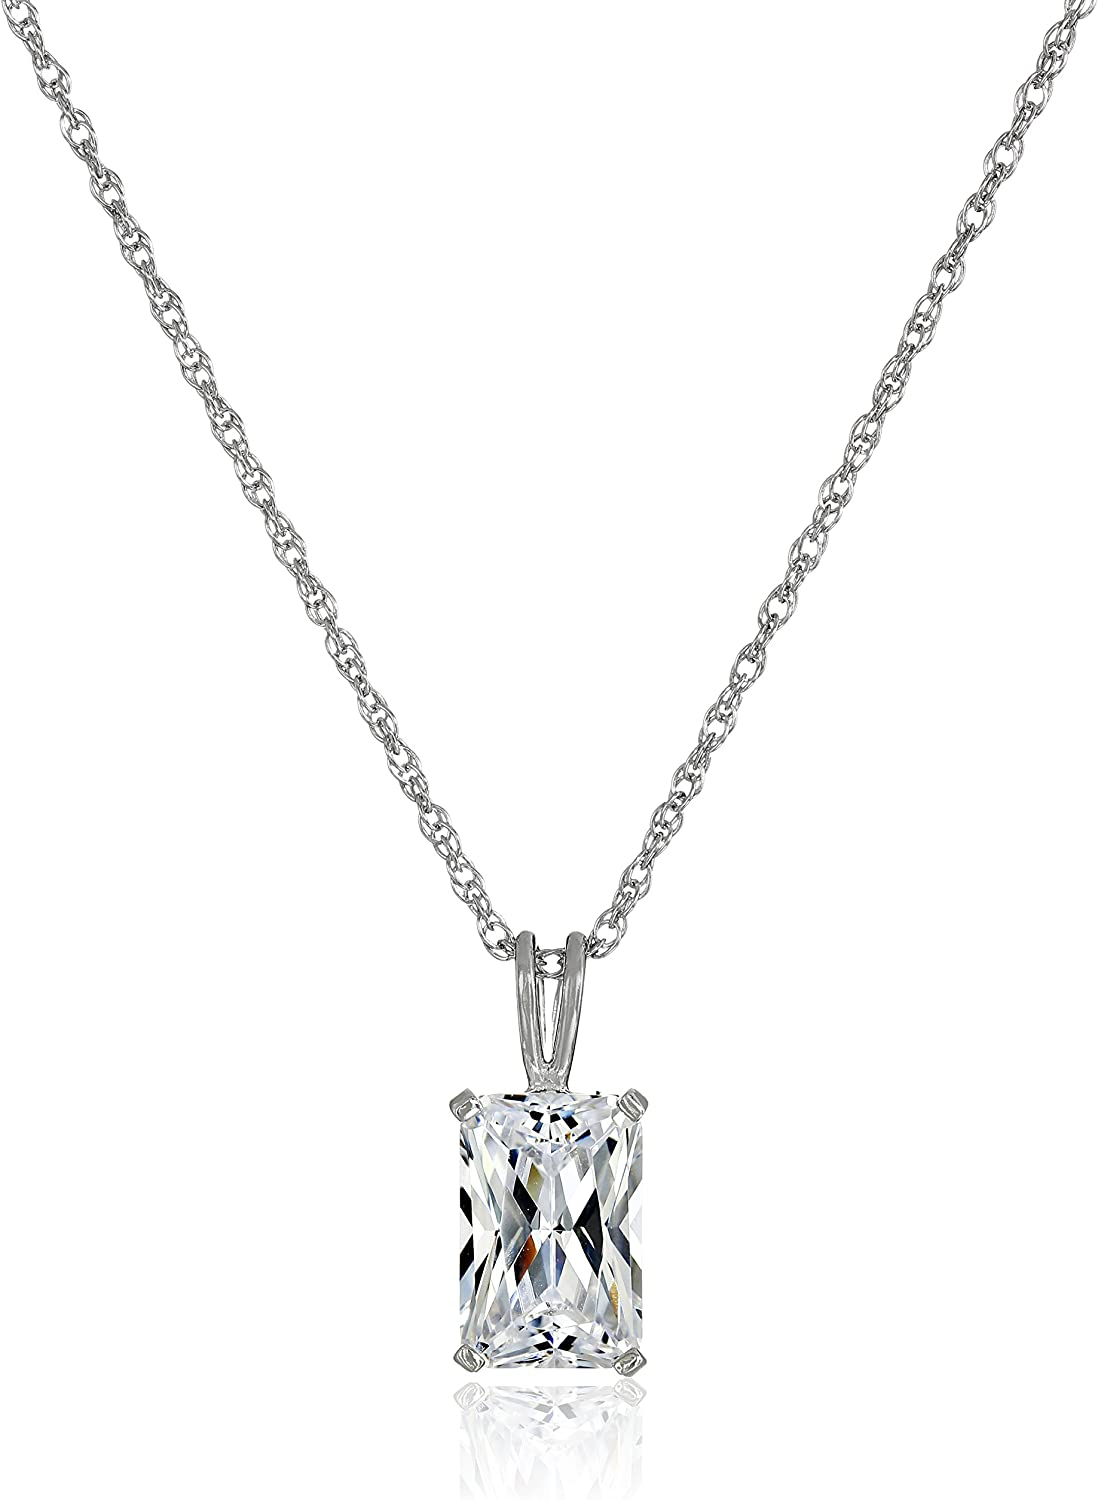 Large Champagne Pear Diamond Alternatives Pendant Necklace White 14k over 925 SS